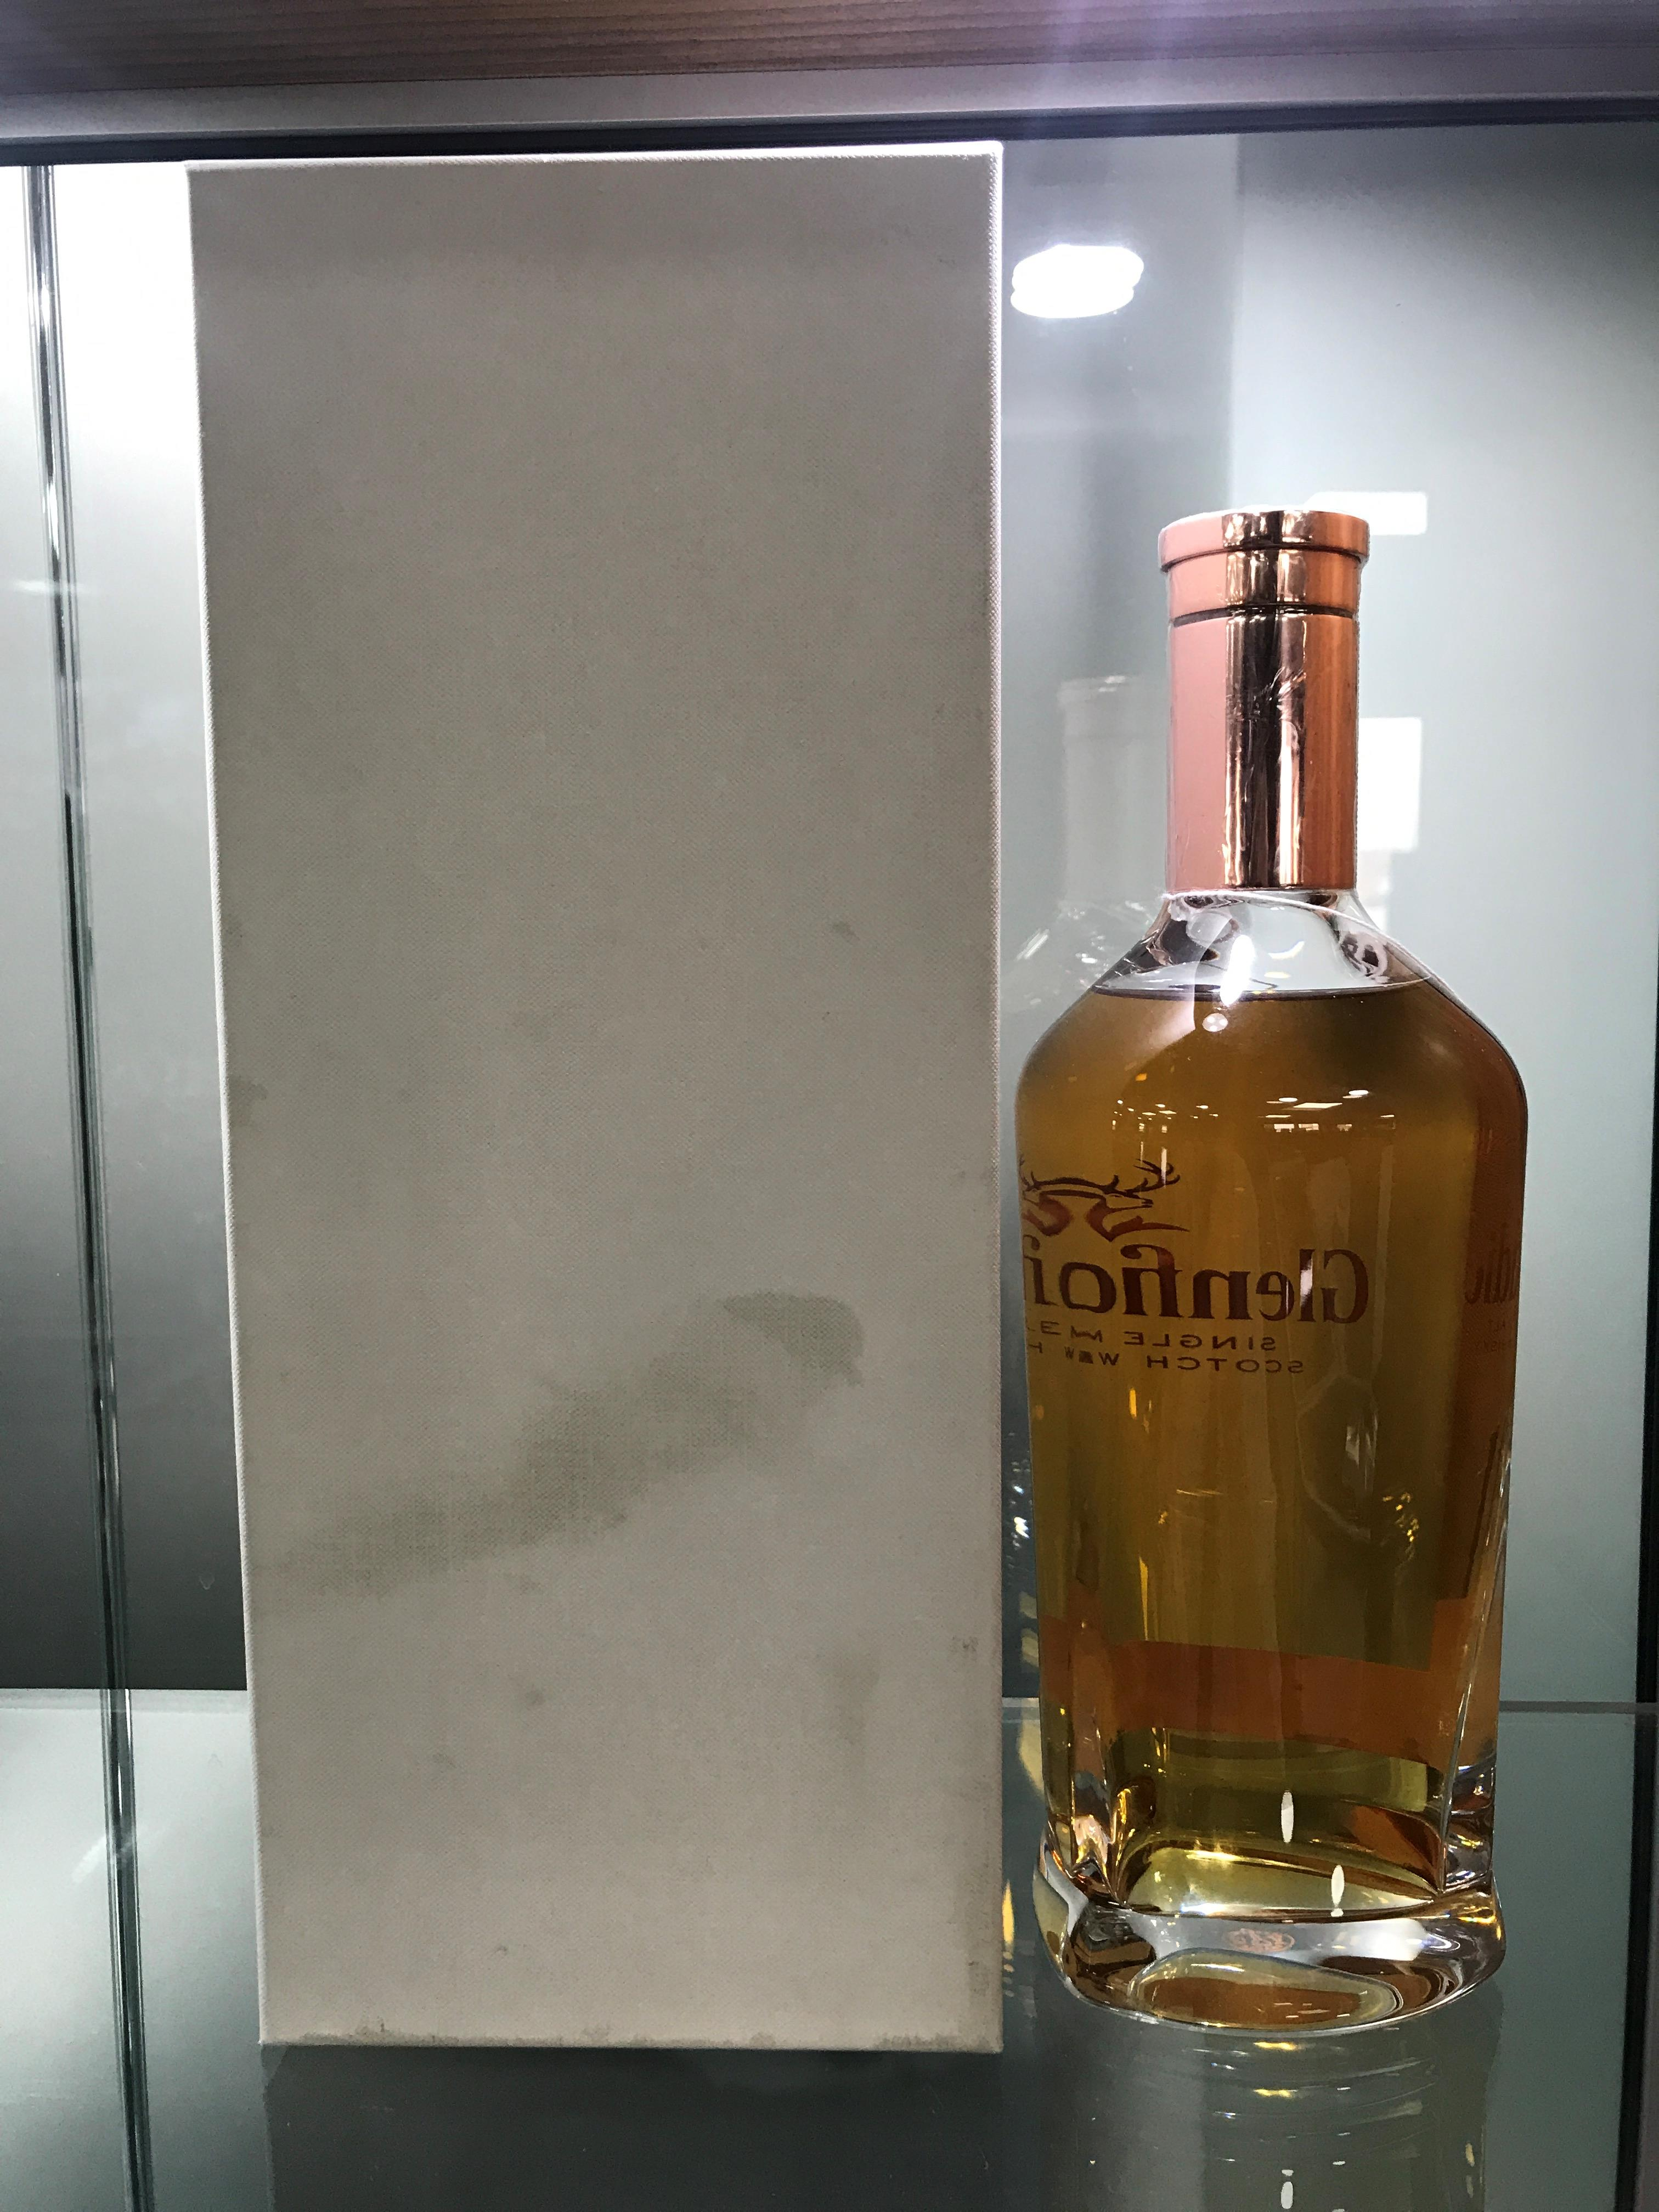 GLENFIDDICH 1996 22 YEARS SERVICE CASK NO. 6052 - Image 2 of 3